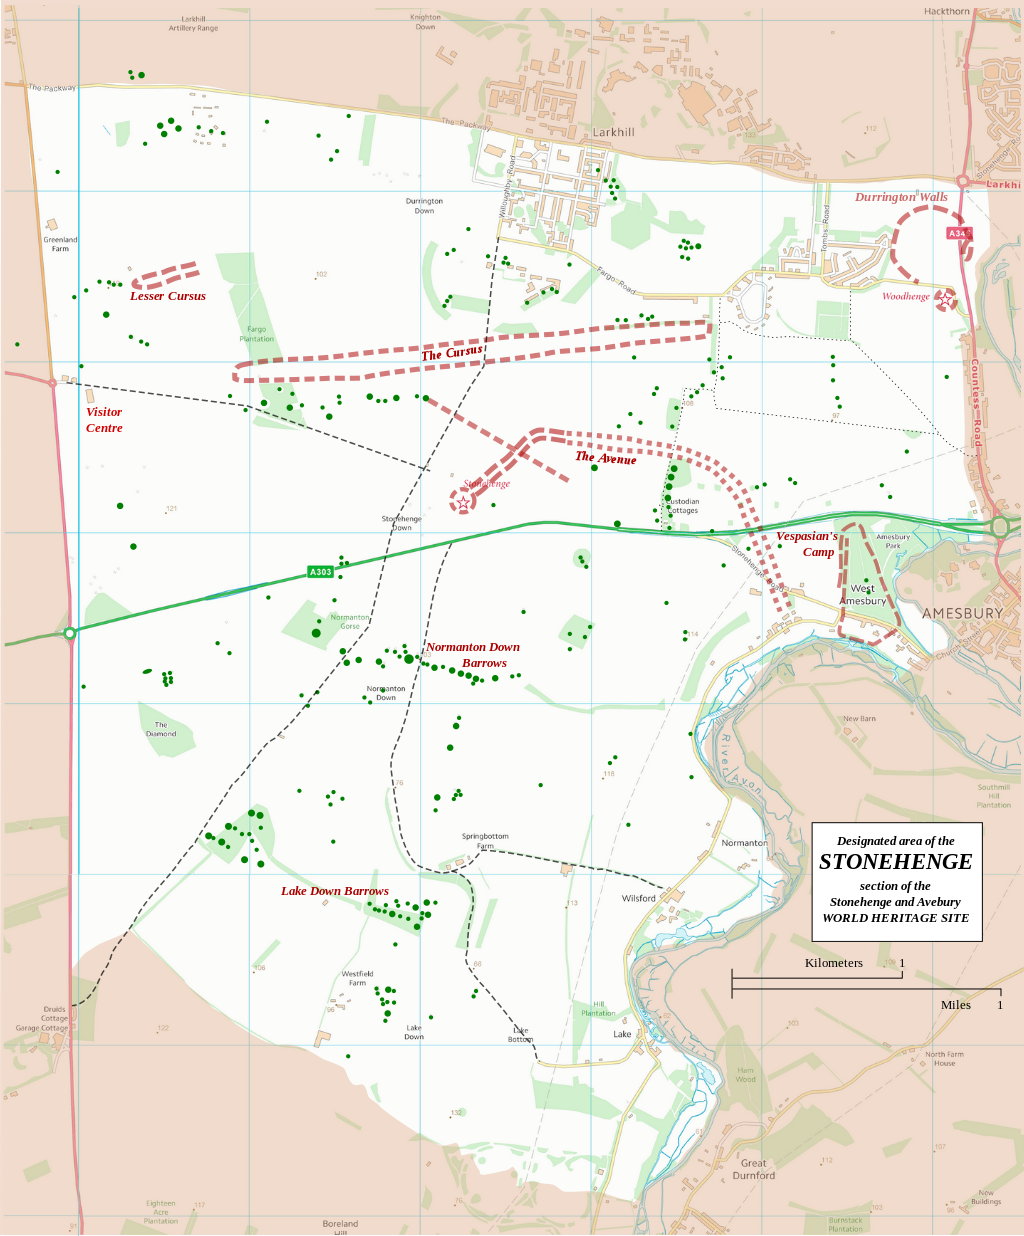 boundary and key sites on the avebury section of the stonehenge avebury and associated sites